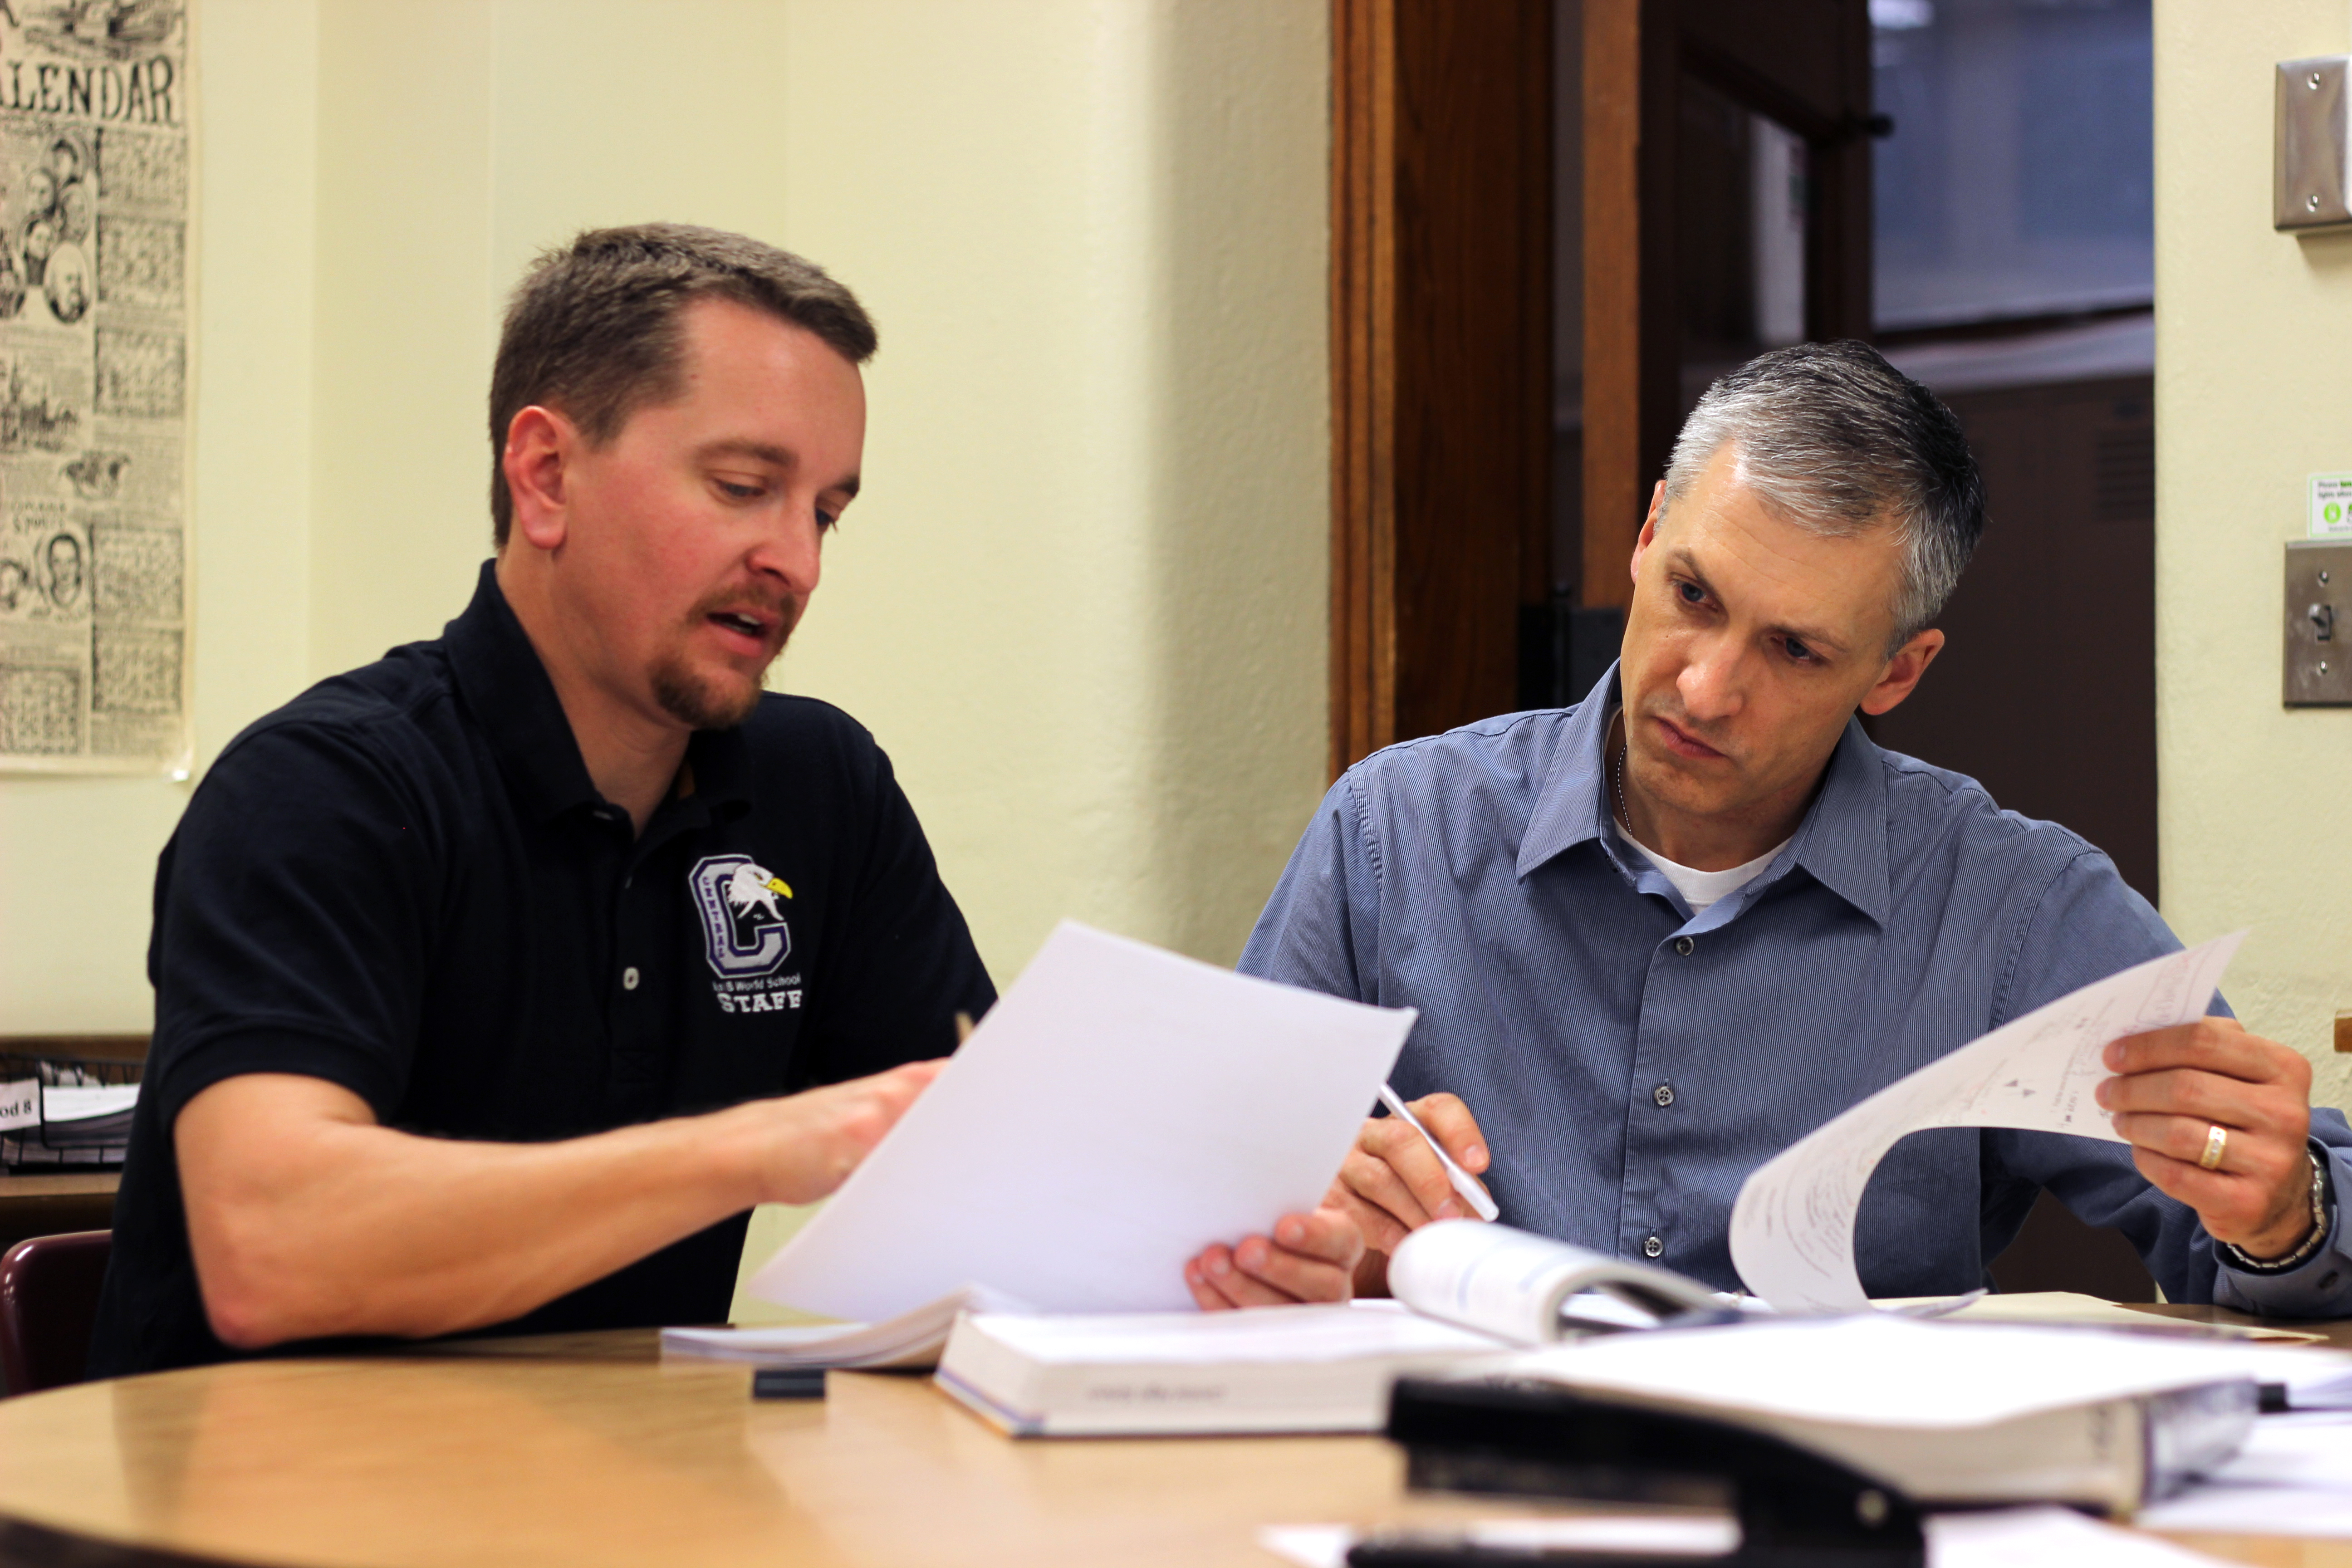 Pat Spieler (right) works with his cooperating teacher Brent Larson. UNL CSMCE